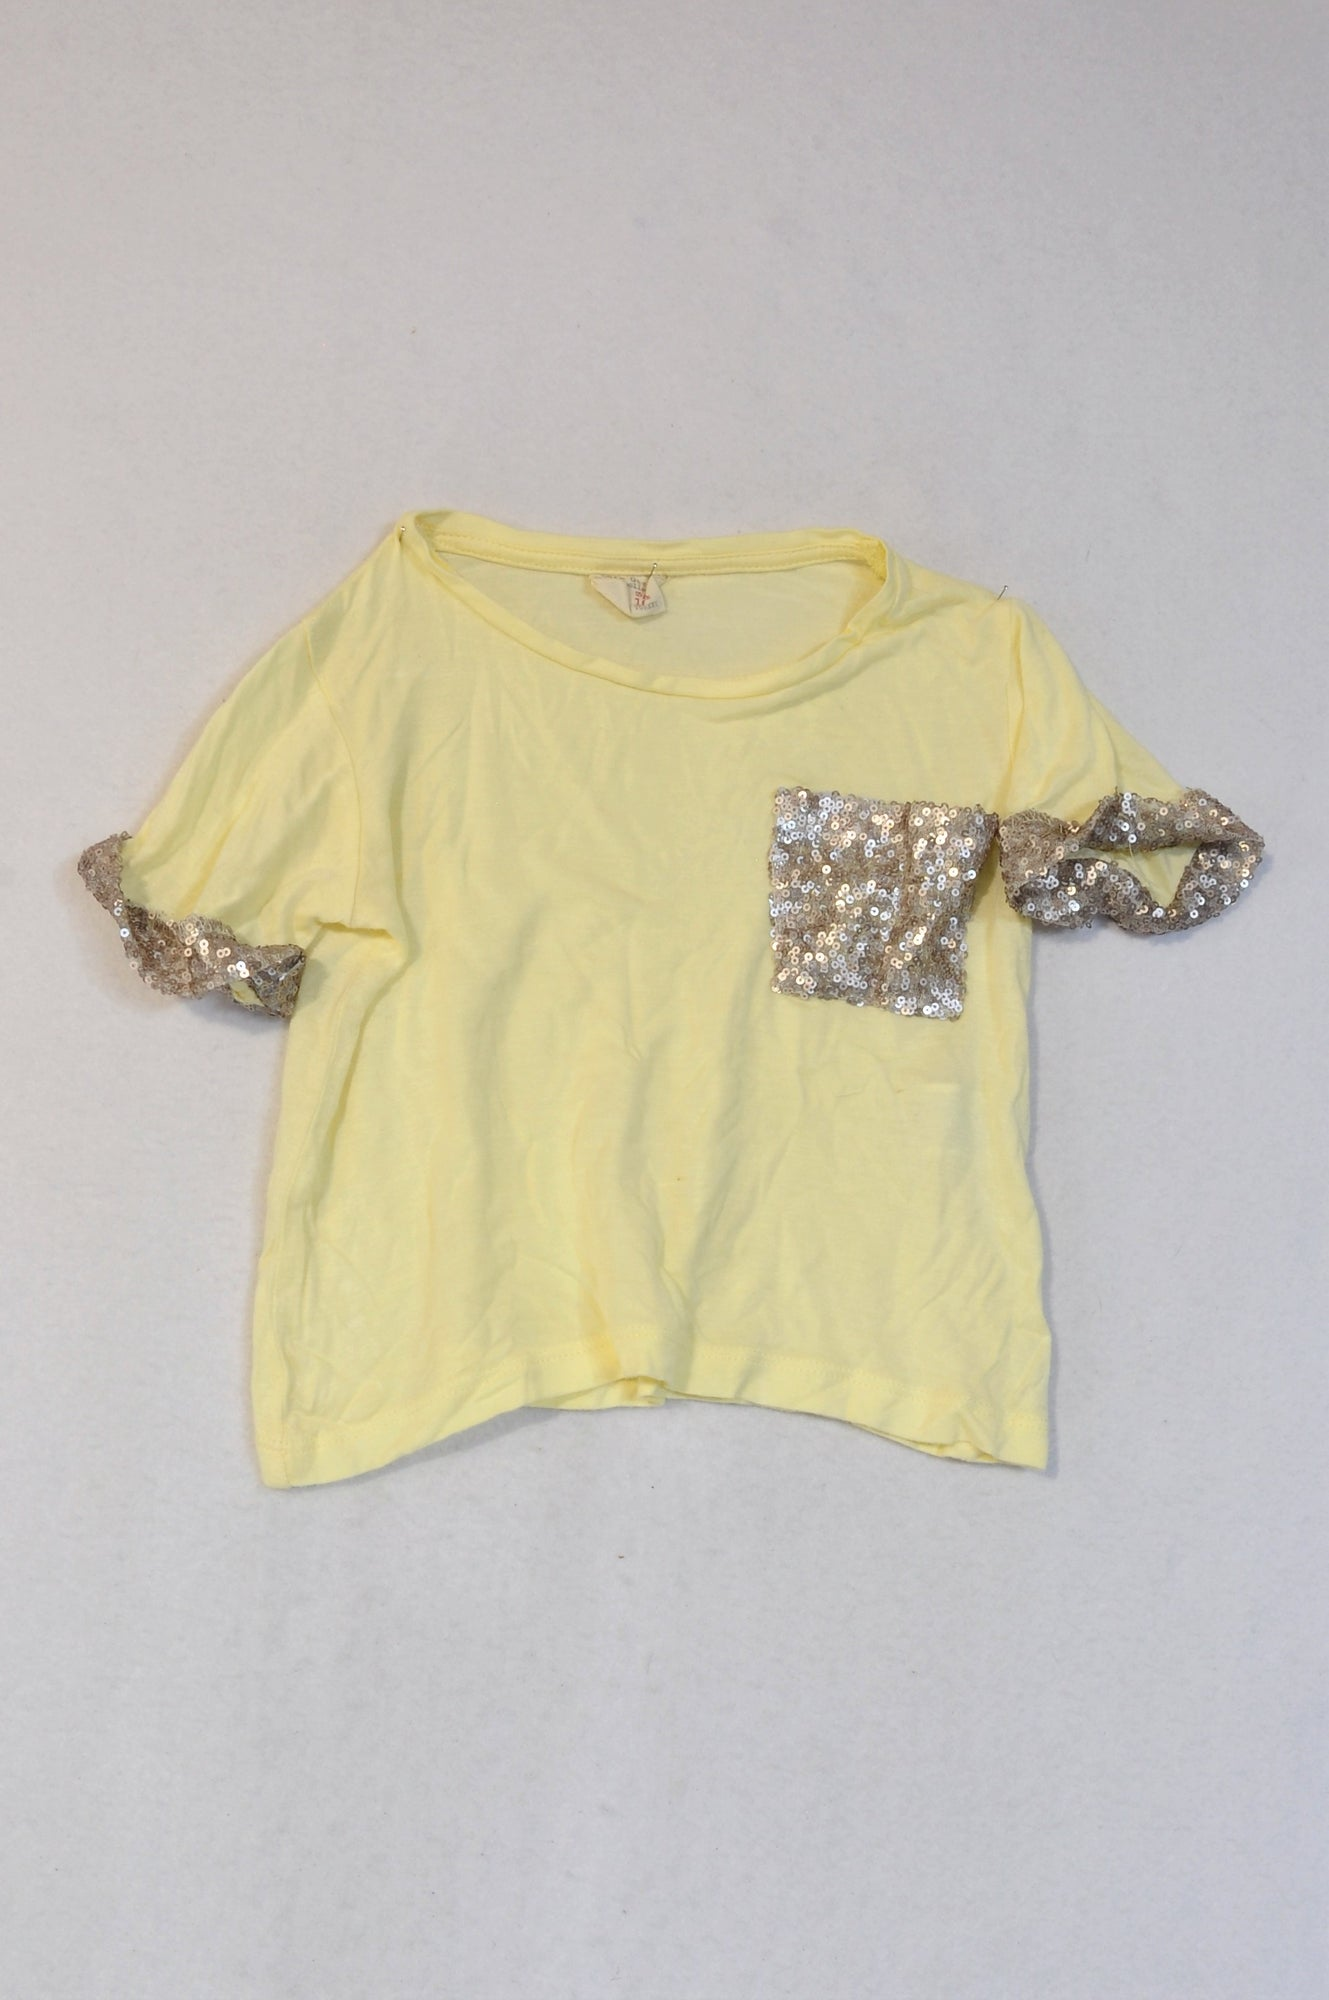 Zara Yellow Sequin Pocket T-shirt Girls 3-4 years